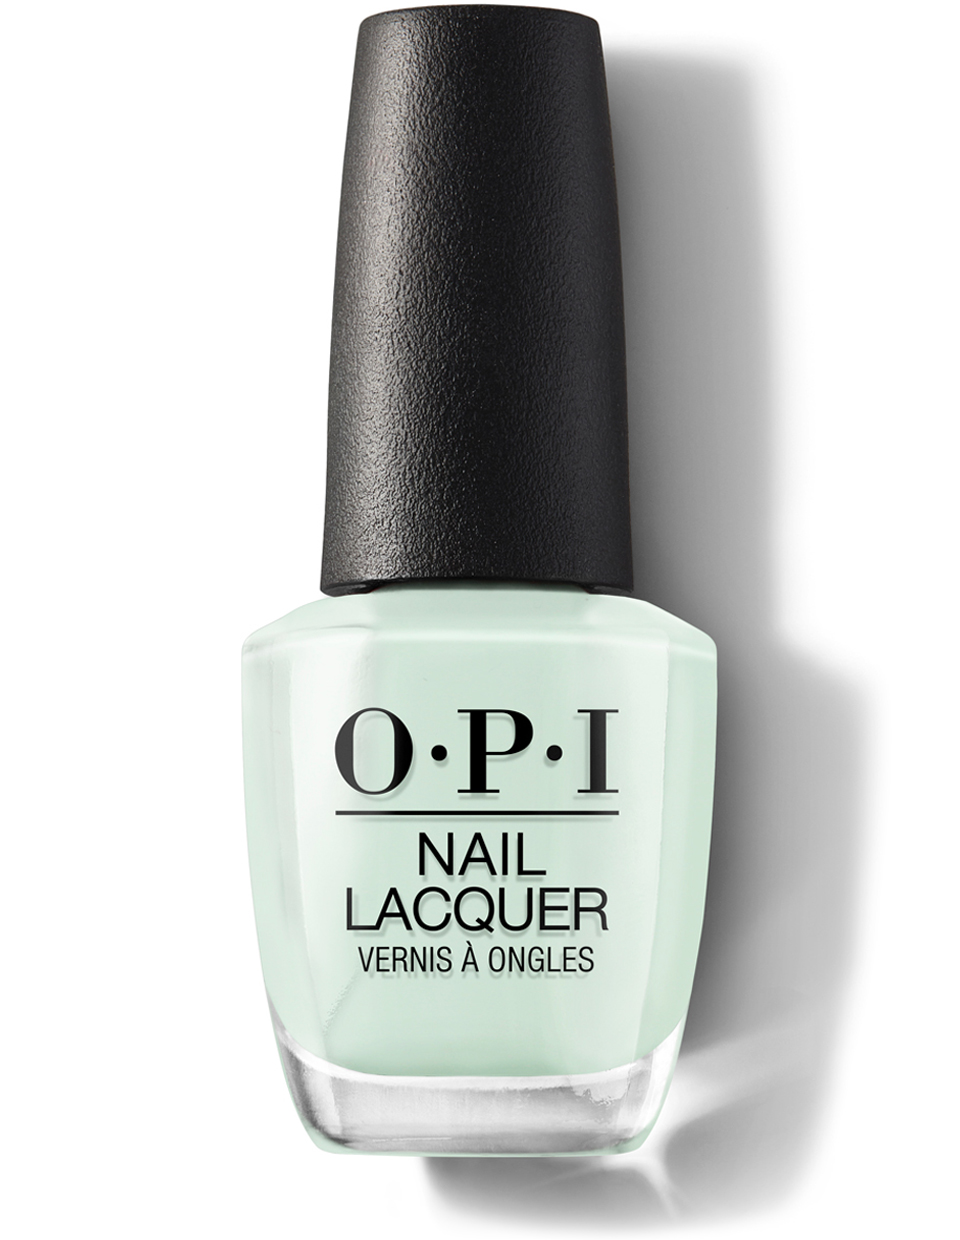 This Cost Me a Mint - Nail Lacquer | OPI